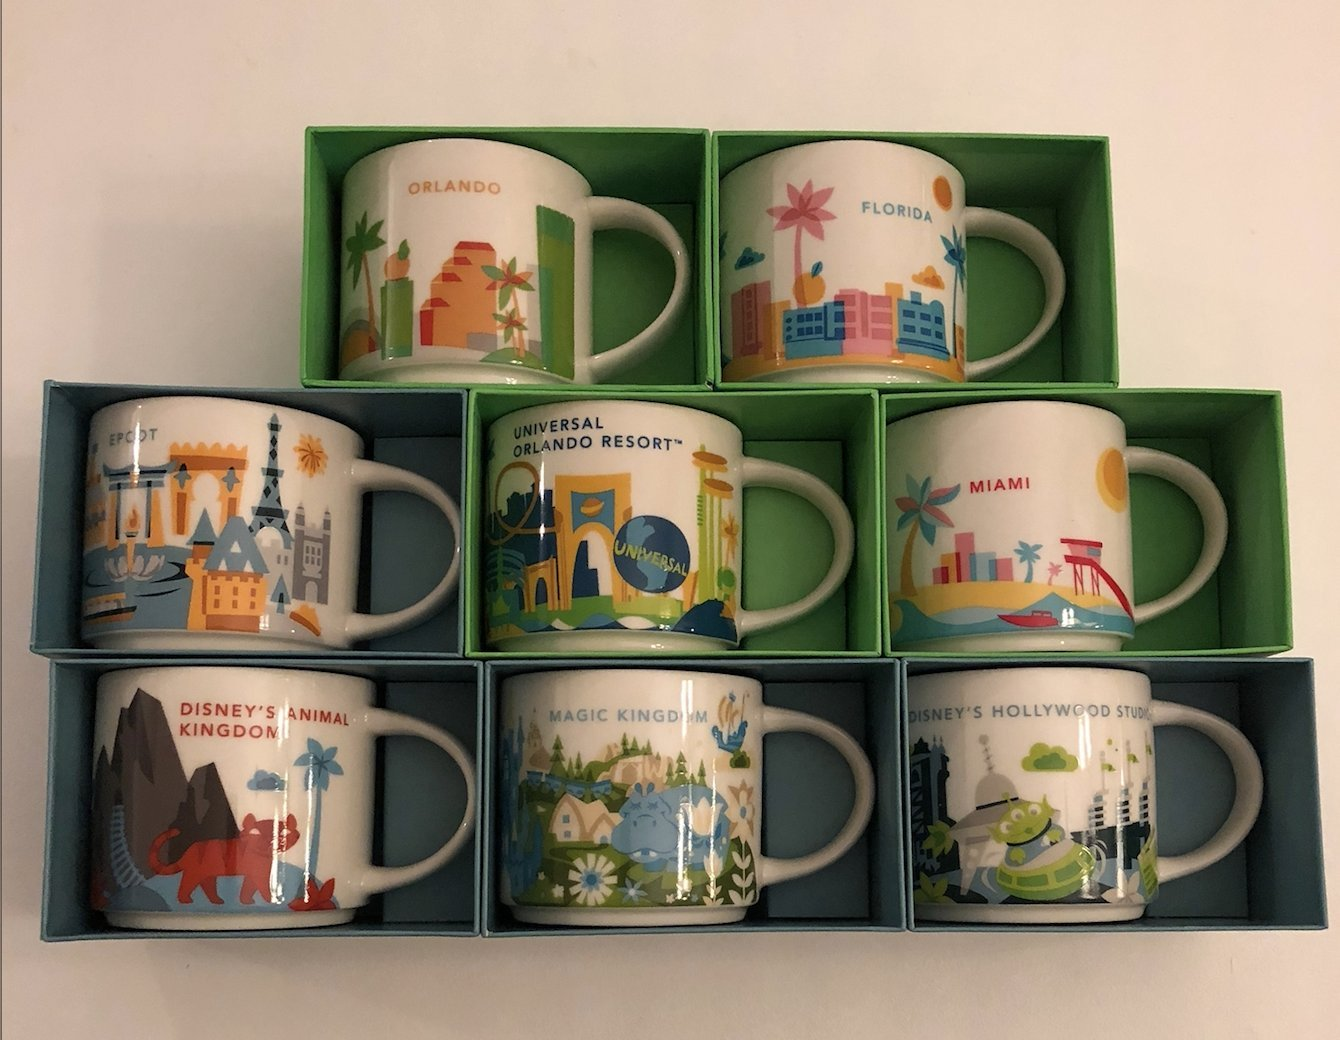 Set of 8: Disney's Animal Kingdom, Magic Kingdom, EPCOT, Hollywood Studios, Universal Studios Orlando Resort, Orlando, Florida and Miami You Are Here 14 Oz. Starbucks Mugs